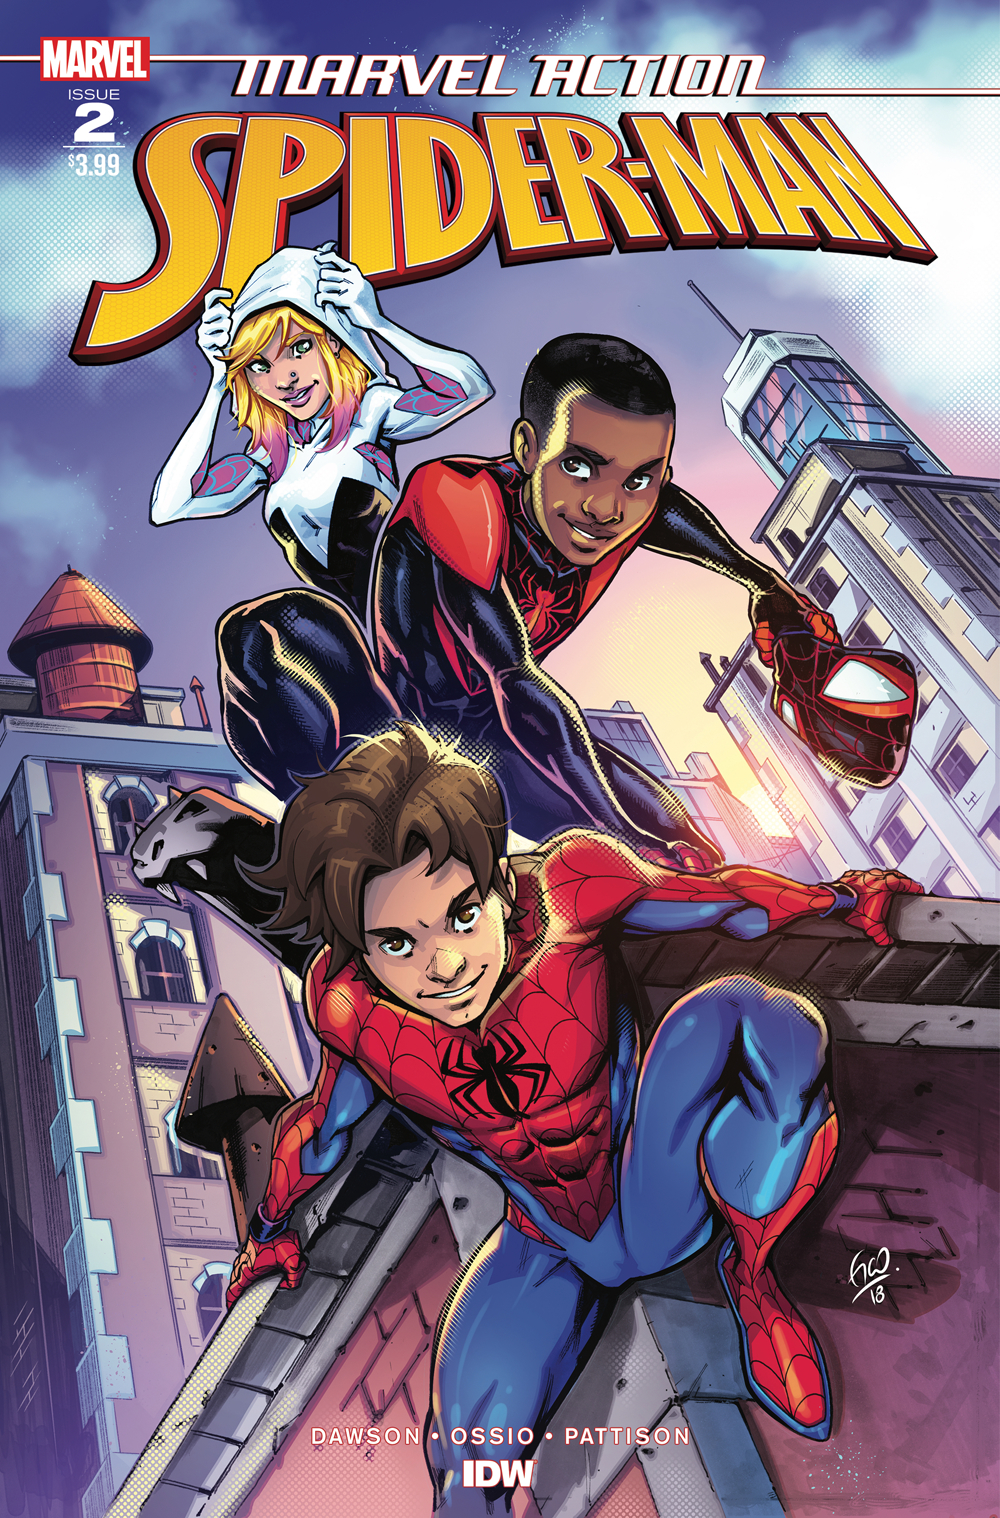 MARVEL ACTION SPIDER-MAN #2